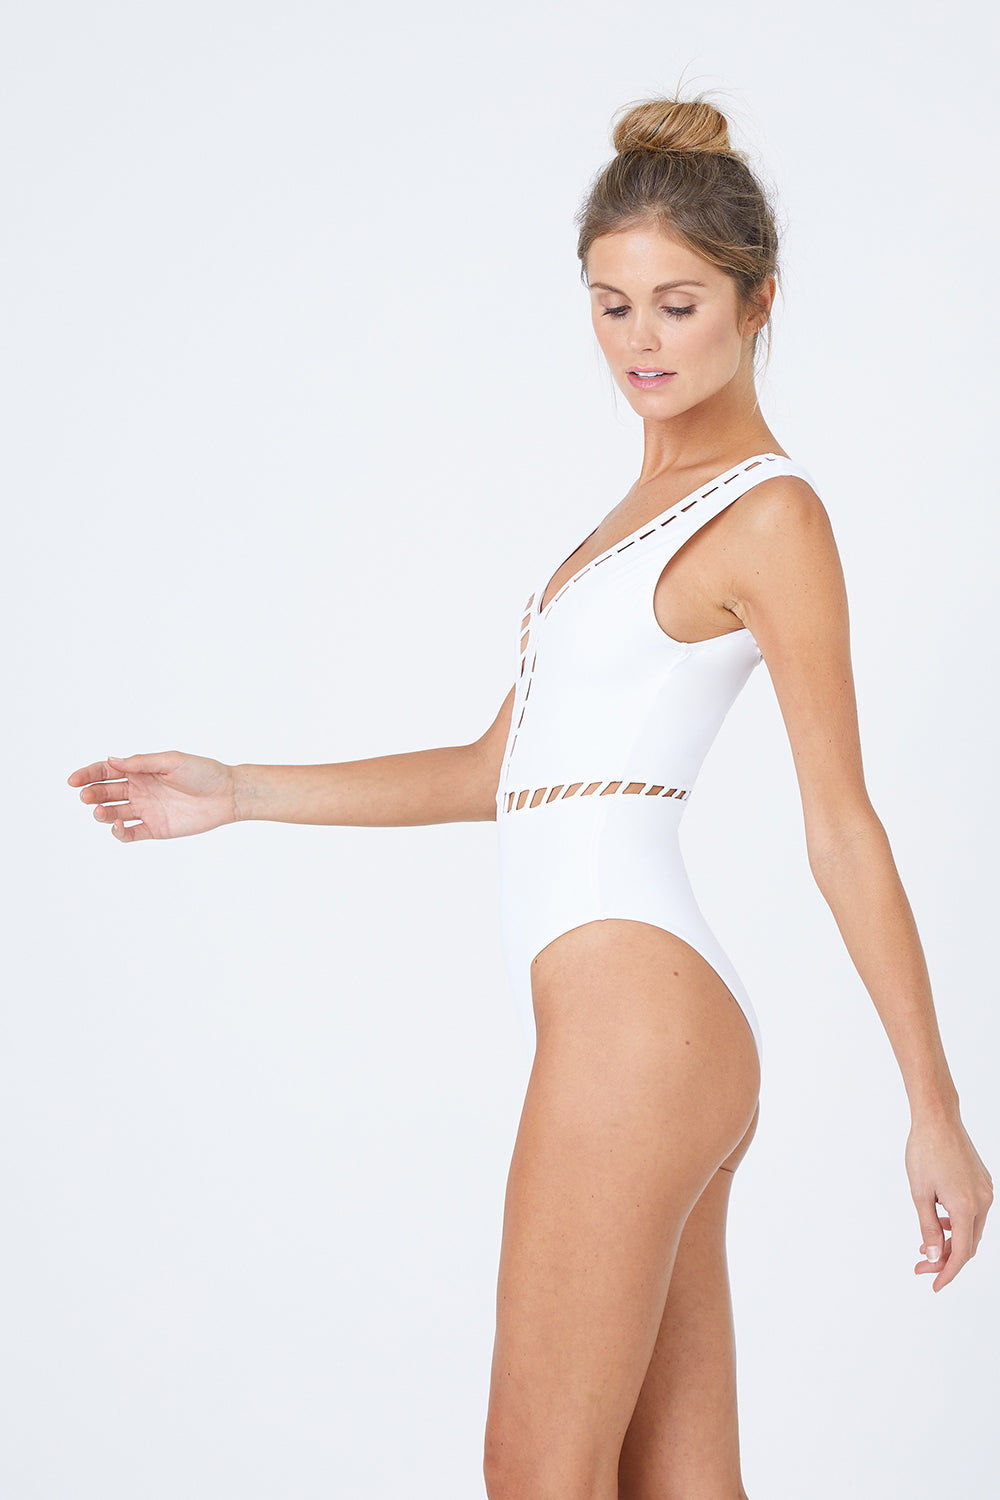 OYE SWIMWEAR Ela Plunge Cut Out High Cut One Piece Swimsuit - White One Piece | White| Oye Swimwear Ela Plunge Cut Out High Cut One Piece Swimsuit - White White deep v-neck one piece swimsuit with cut-out pattern. Wide strap, sleeveless pull-over design features a deep v-shaped back Geometric cut-out high cut leg moderate coverage Side View